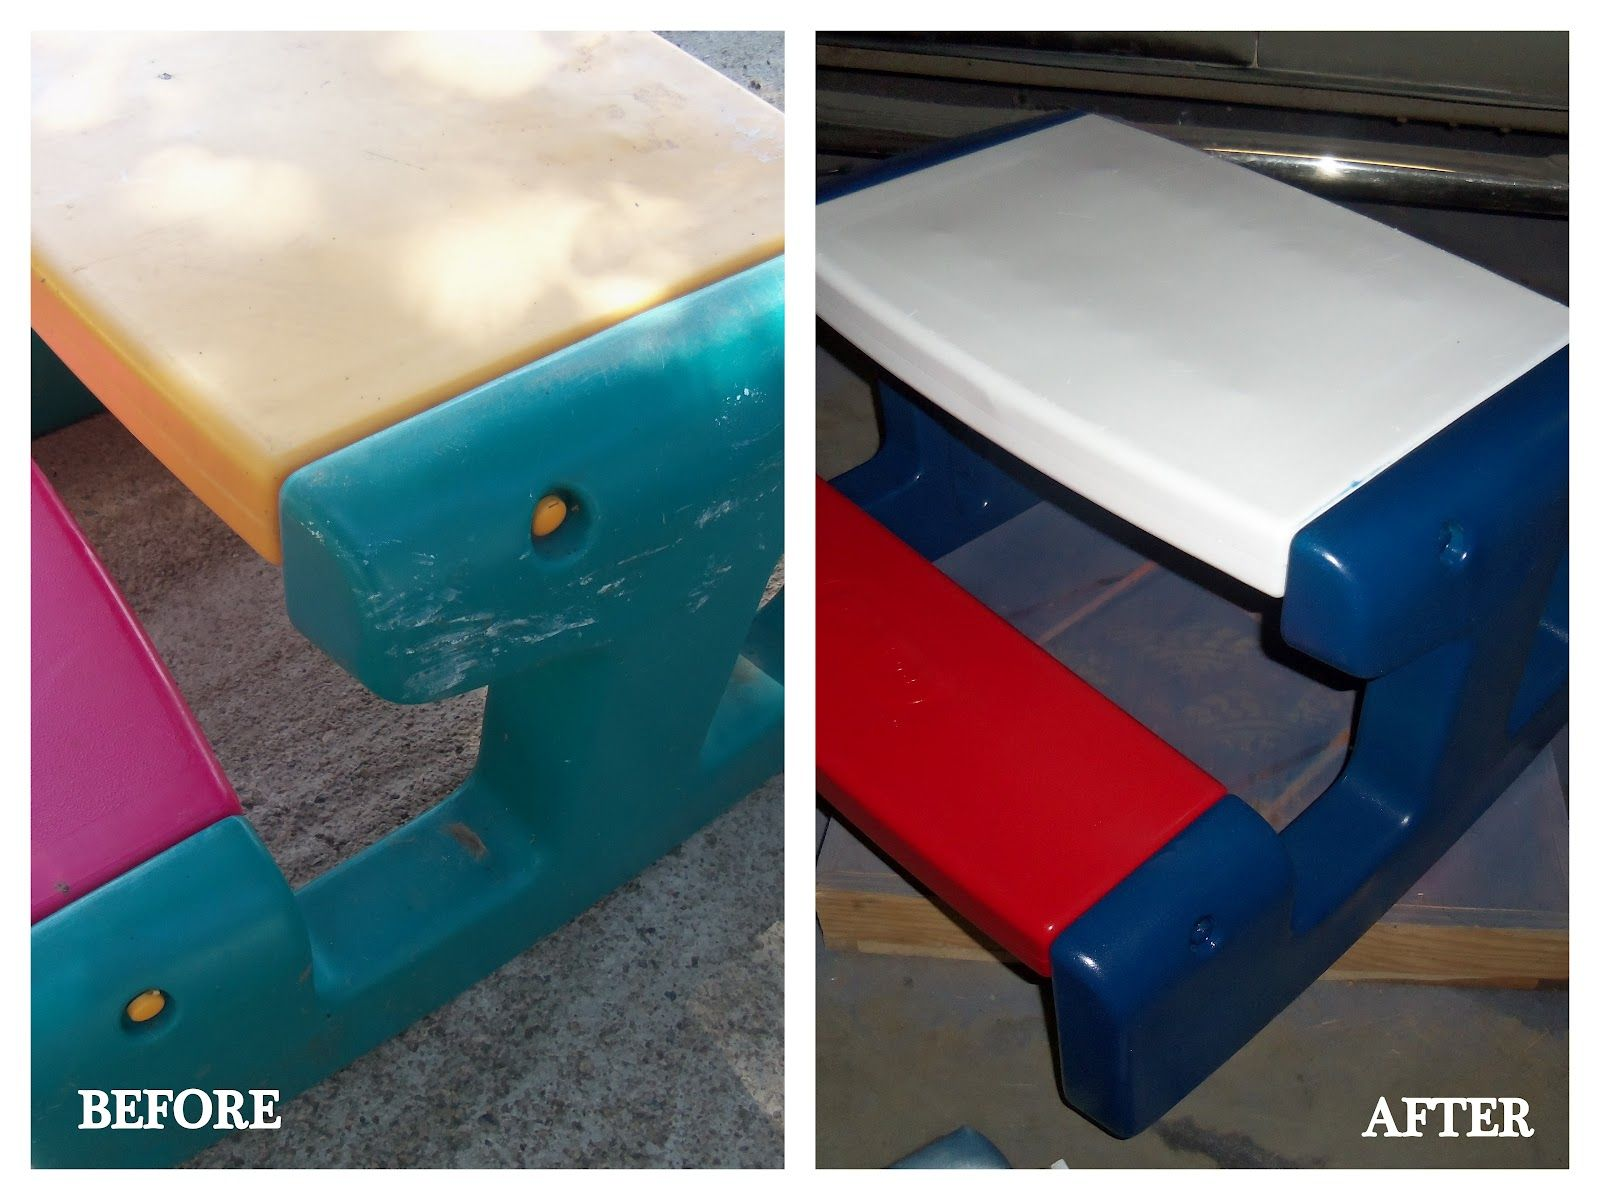 Diy Project Spray Paint Plastic Little Tikes Outdoor Toys Table And Chairs Toys And Ikea